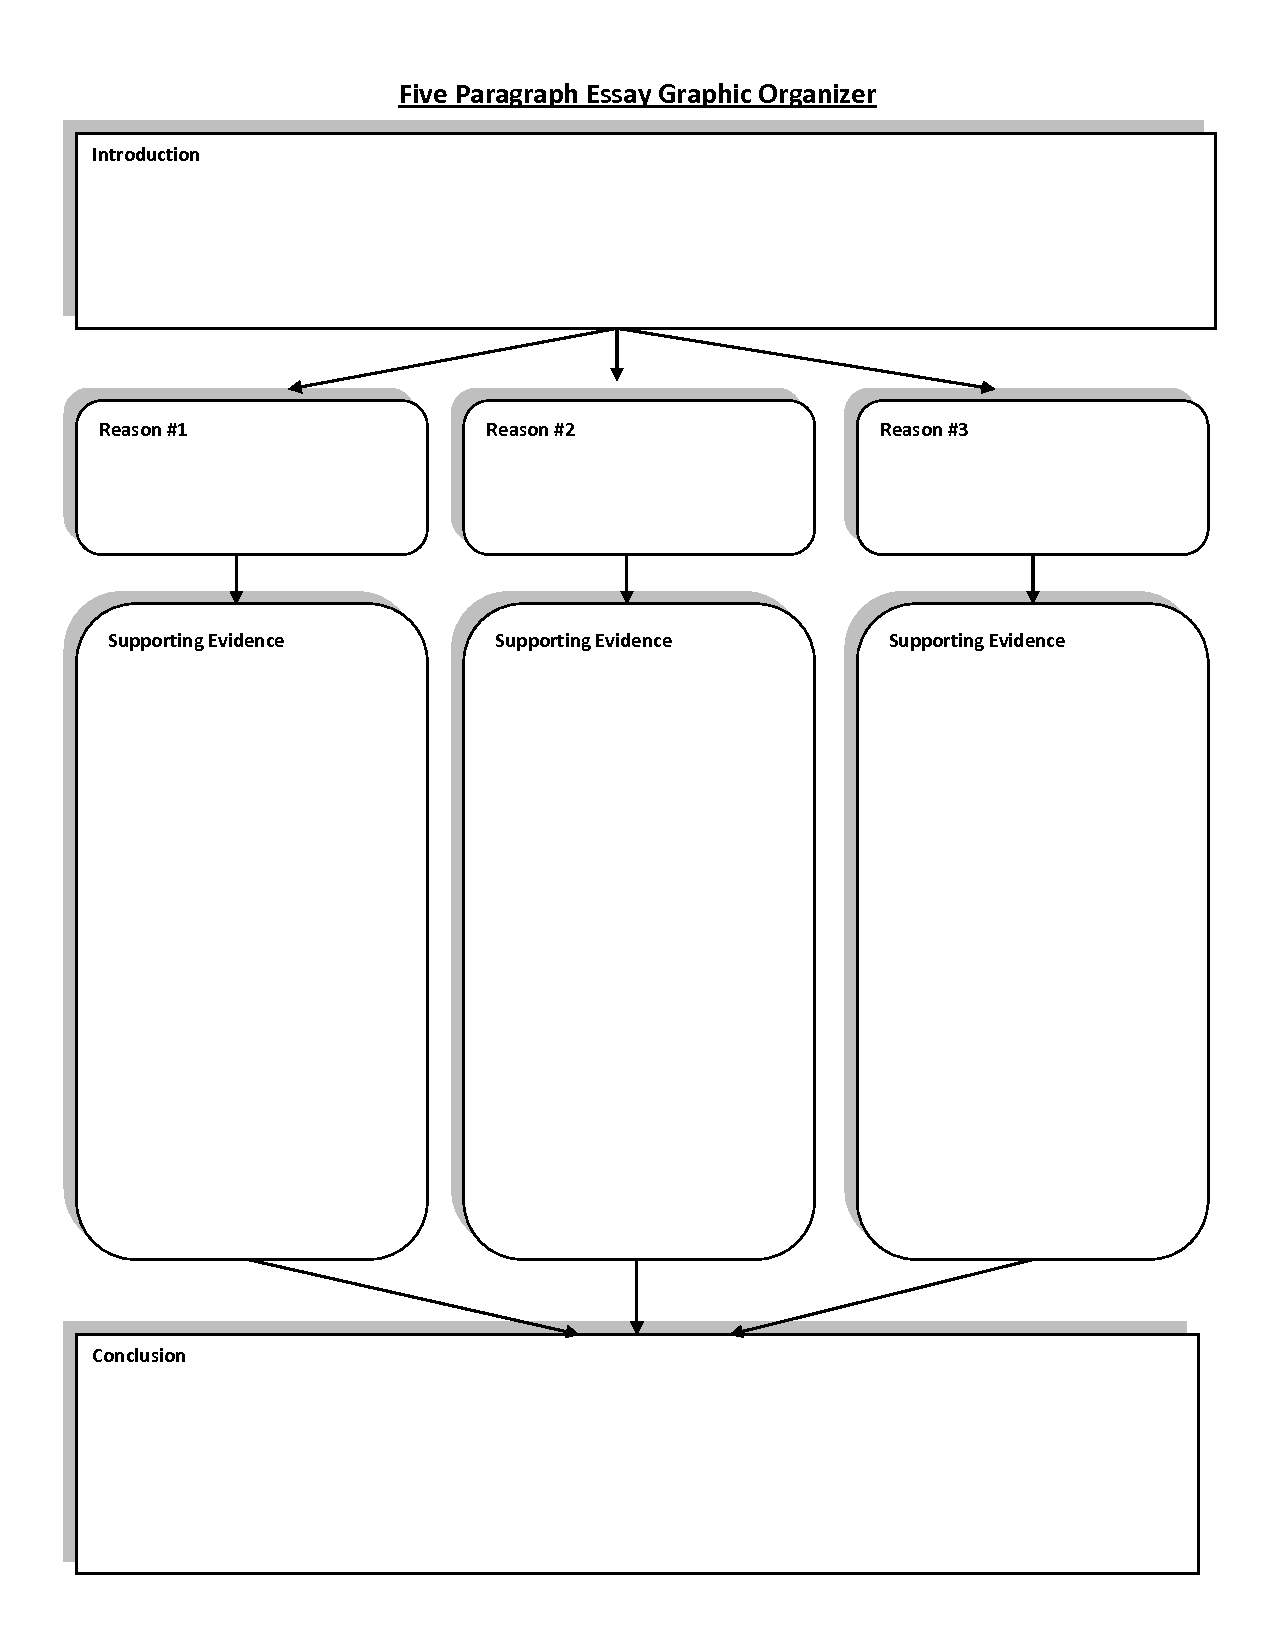 How to Plan a Descriptive Paragraph Using a Graphic Organizer